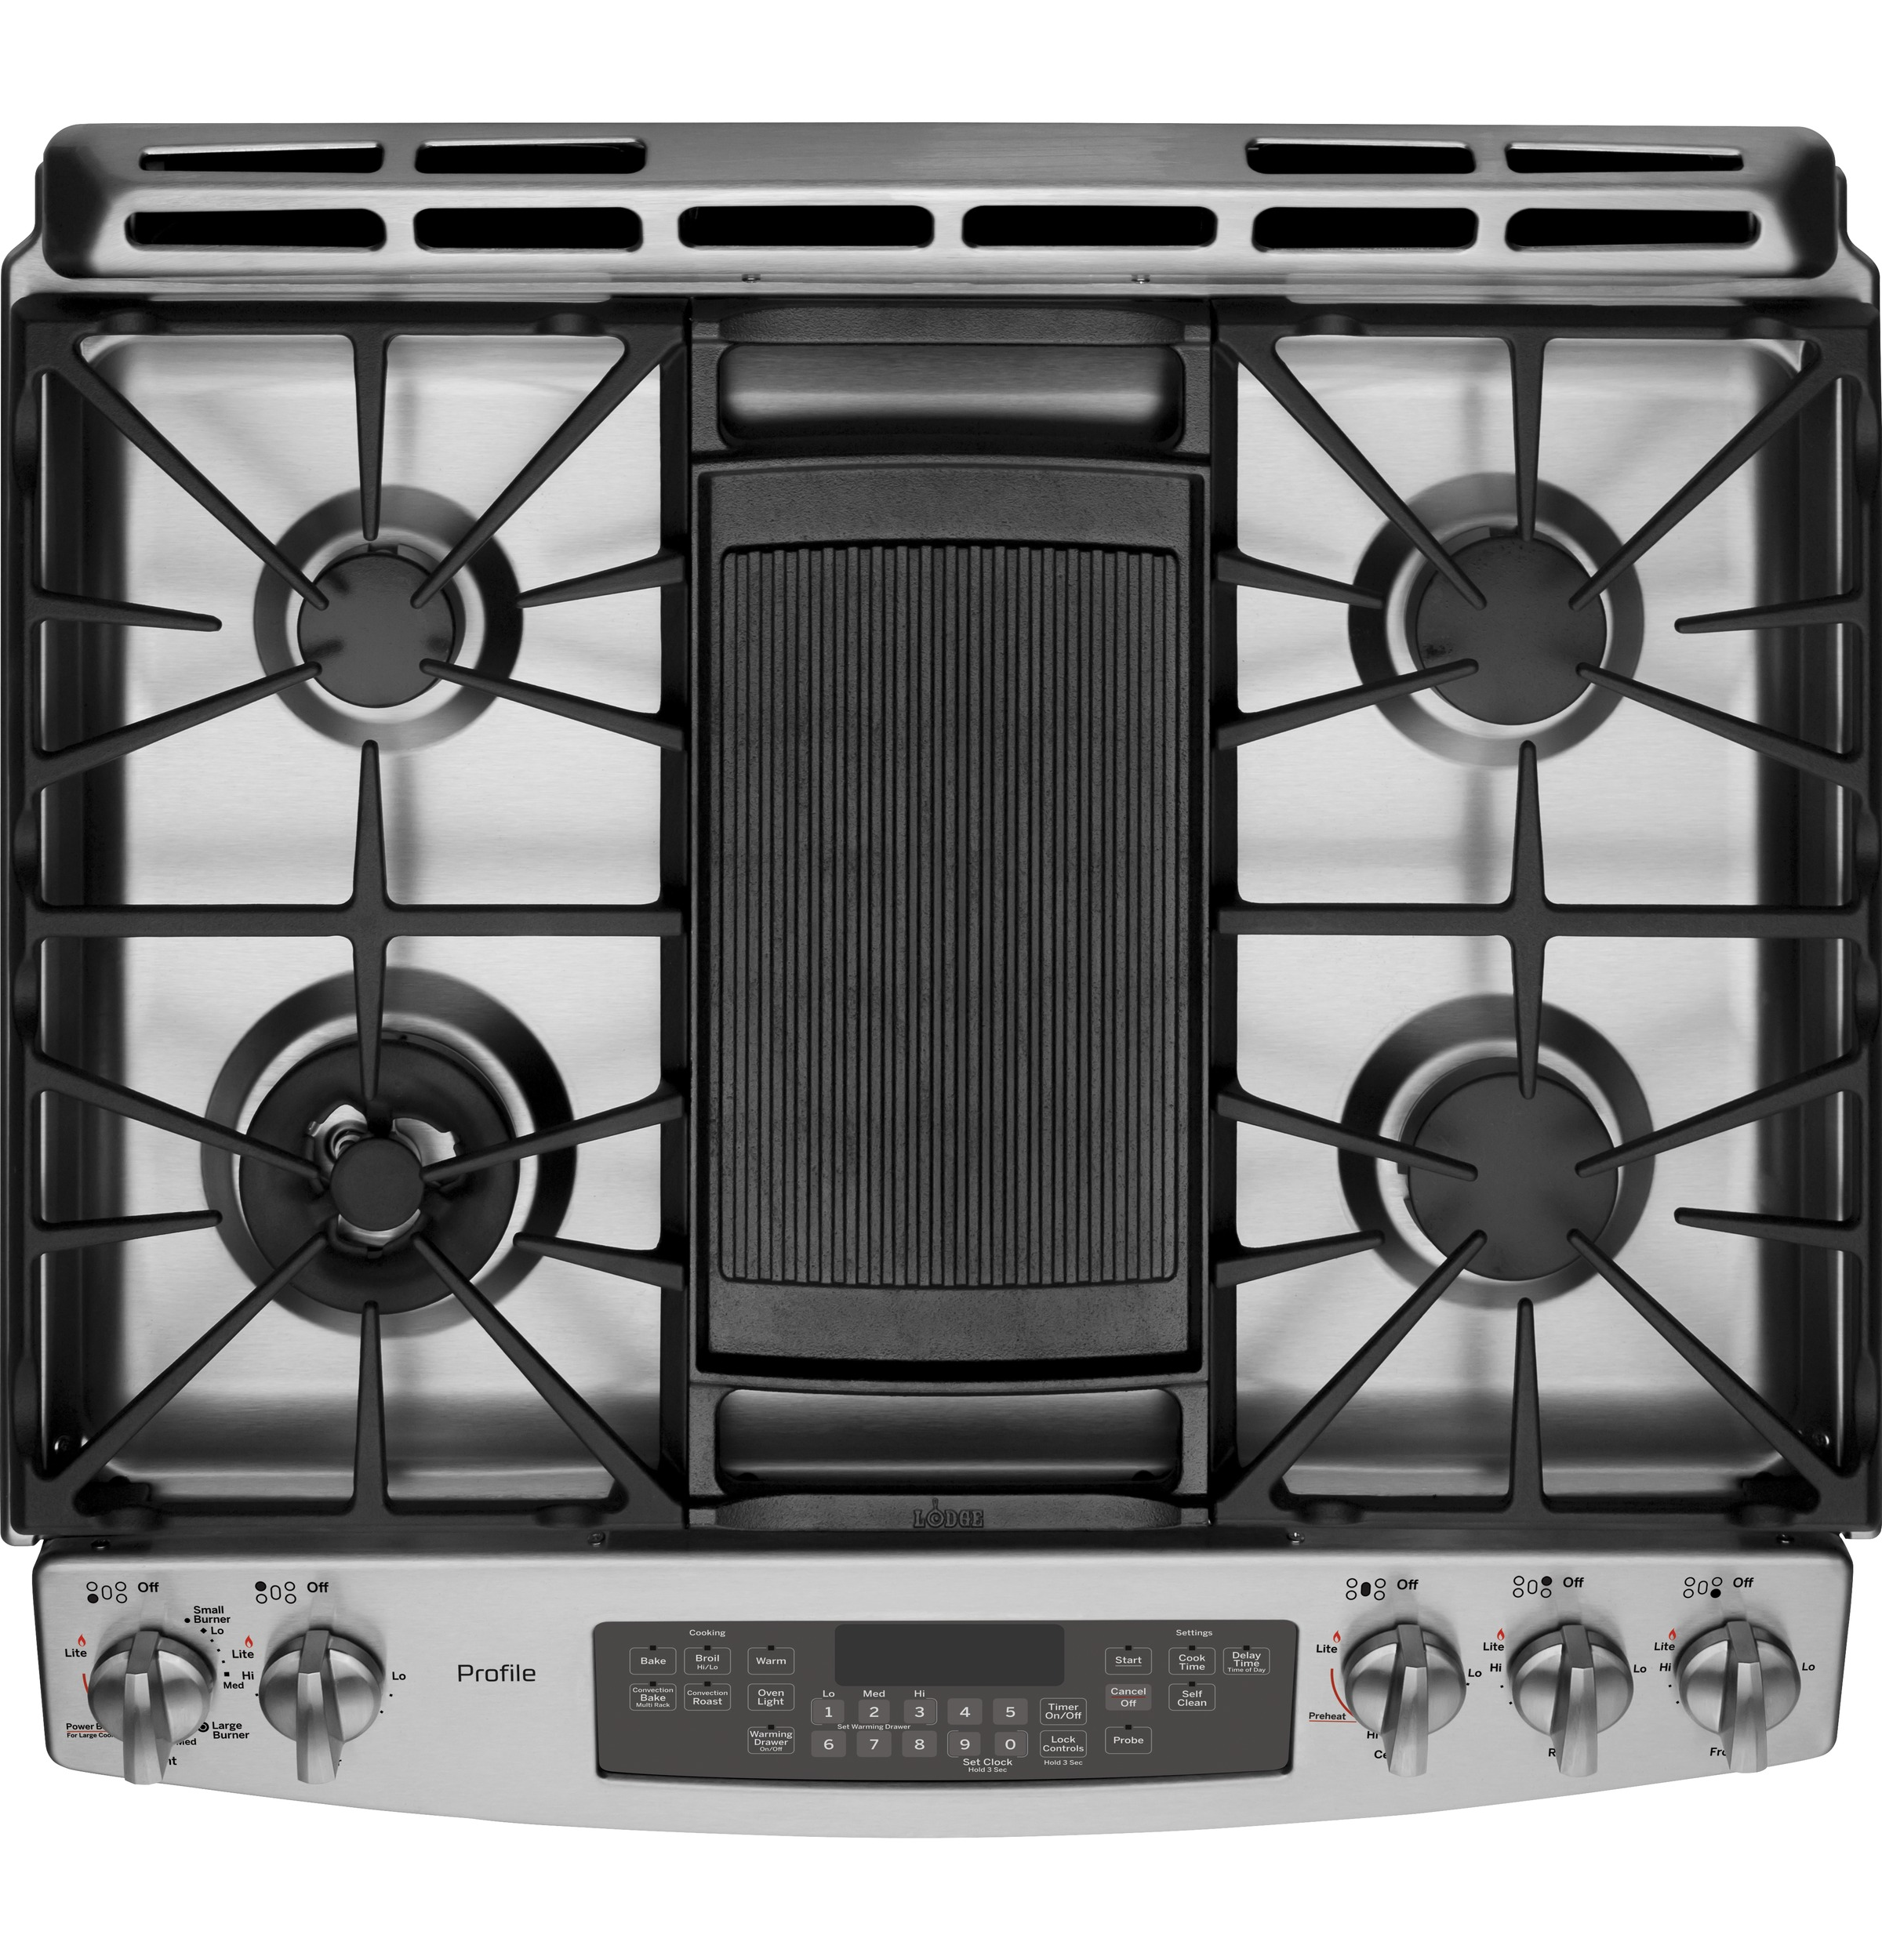 """Model: P2S920SEFSS   GE Profile GE Profile™ Series 30"""" Dual Fuel Slide-In Front Control Range with Warming Drawer"""